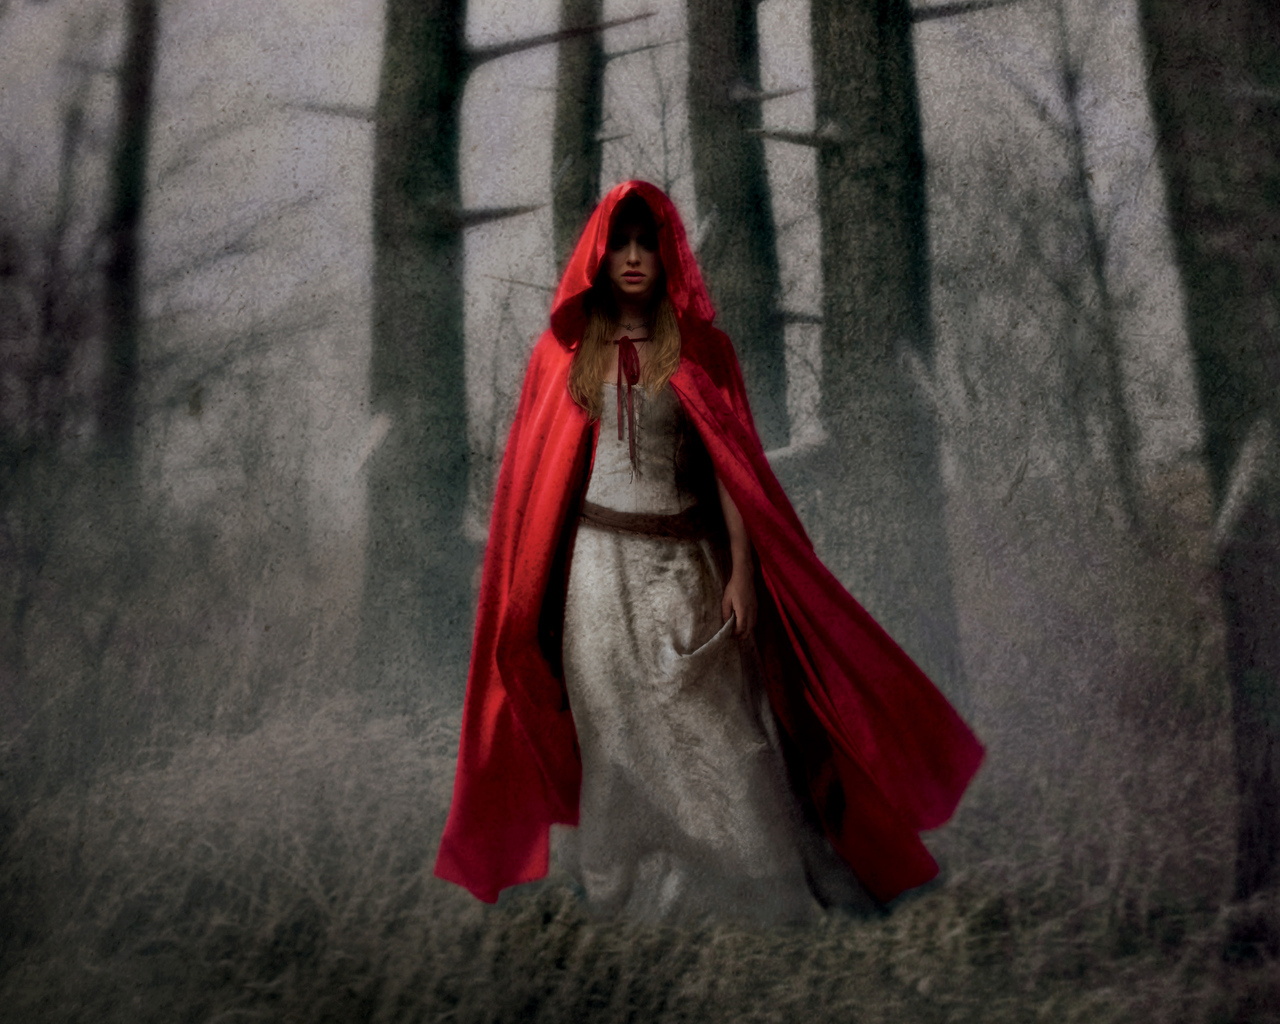 1280x1024 Red Riding Hood 1280x1024 Resolution HD 4k Wallpap